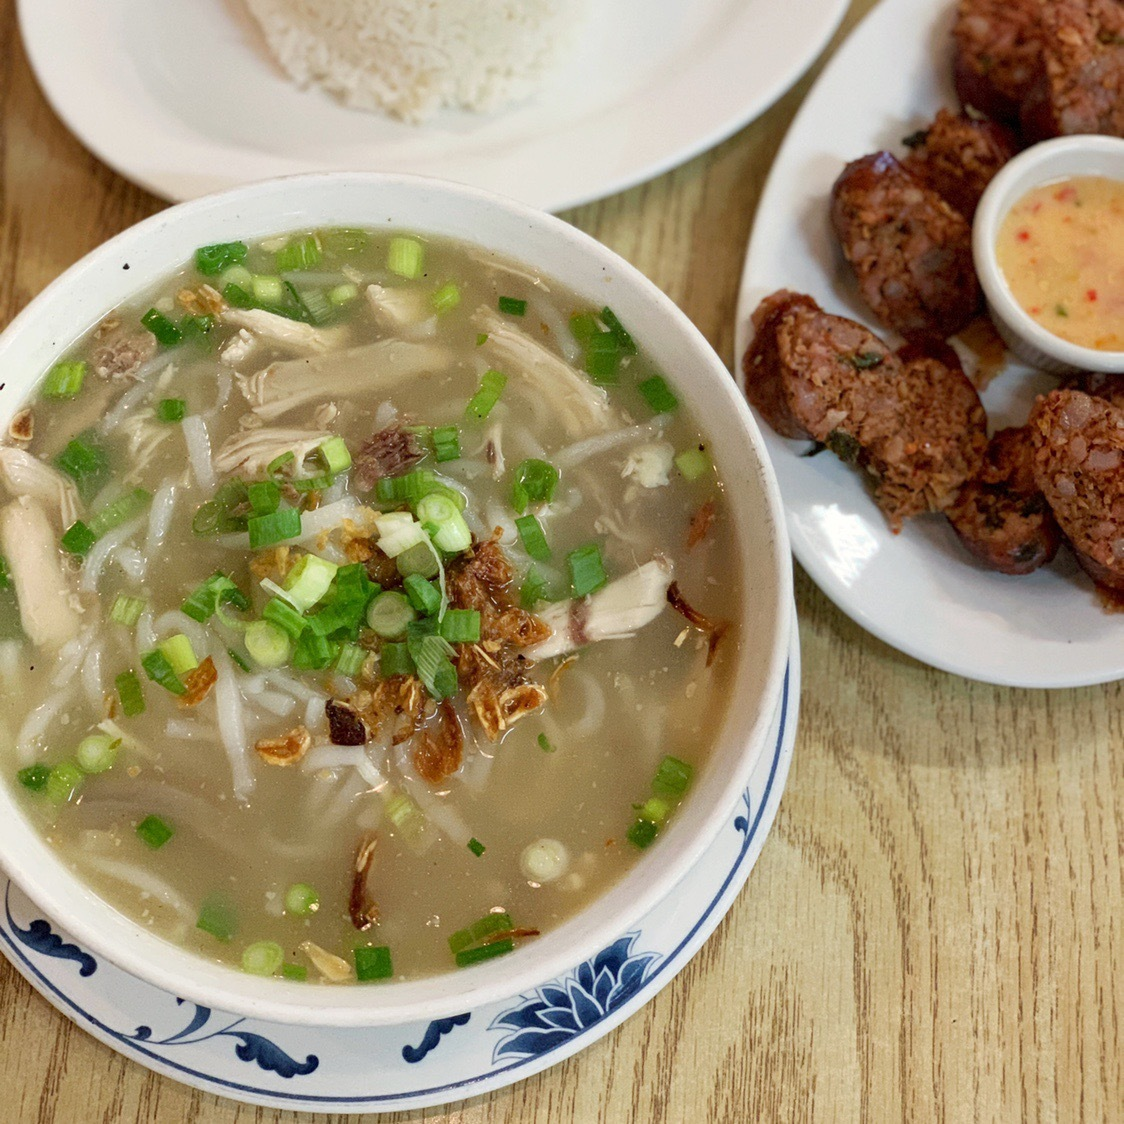 On the left — a large bowl of Lao chicken noodle soup, on the right — sliced spicy sausage and sauce on a platter